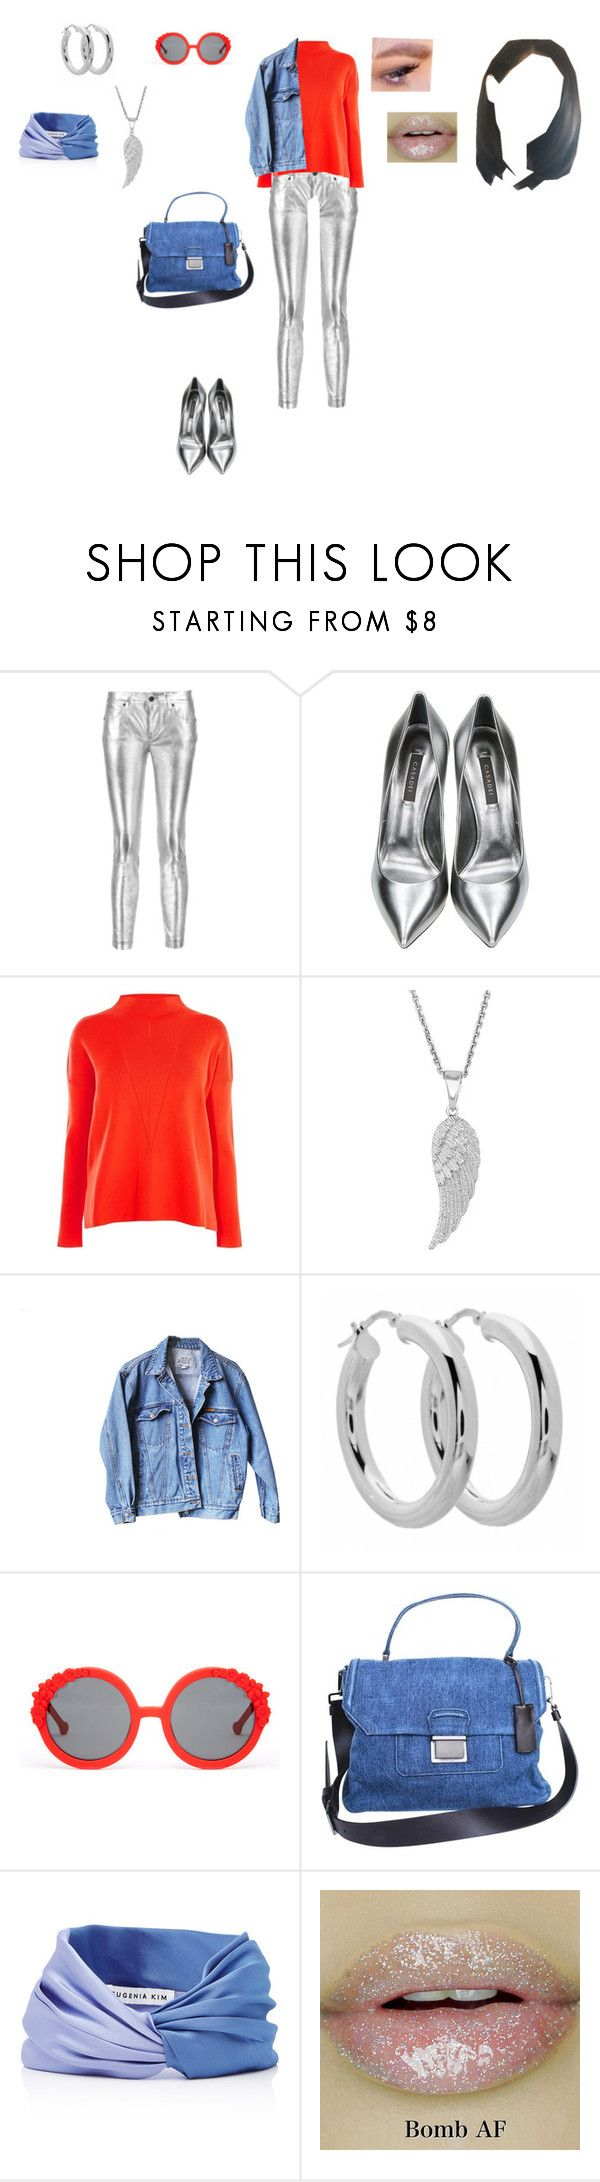 """Colourful outfit"" by helena94-1 on Polyvore featuring RtA, Casadei, Karen Millen, Levi's, Preen, Miu Miu, Eugenia Kim and polyvorefashion"